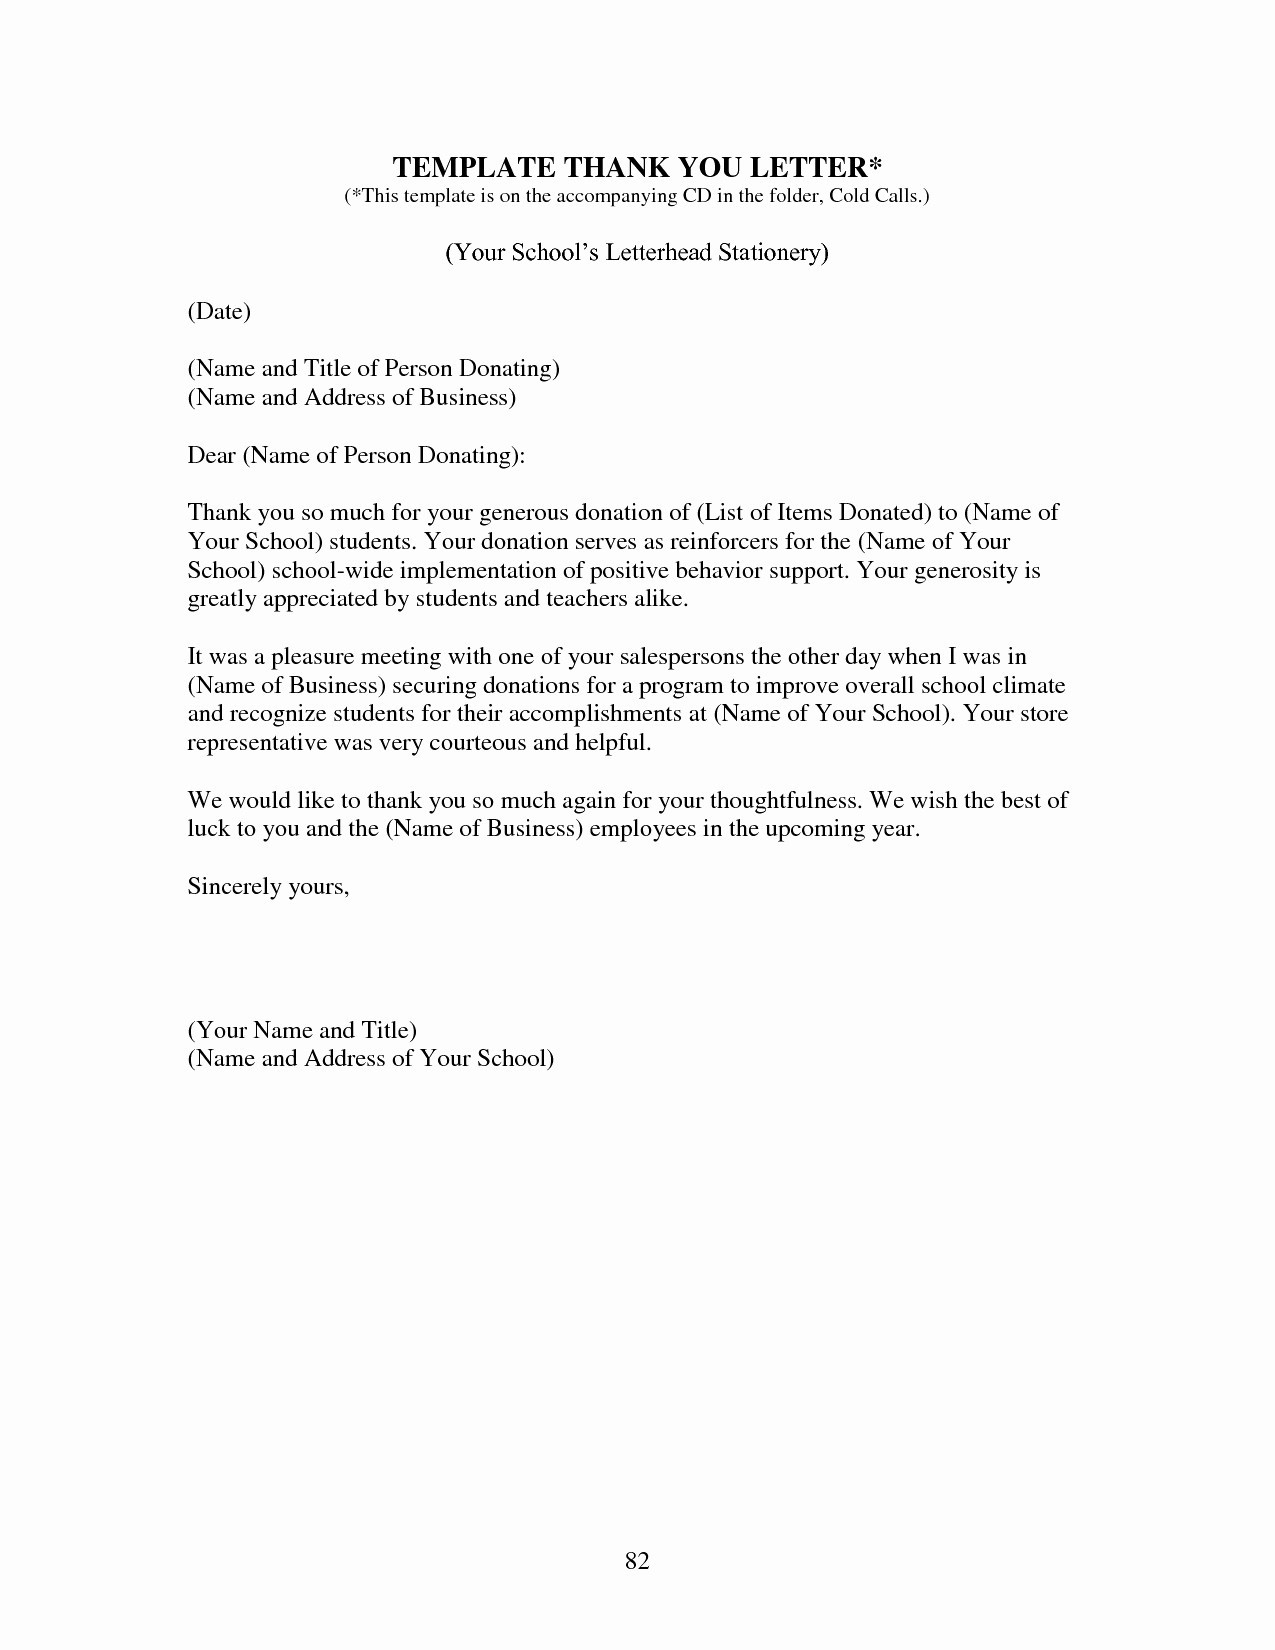 Business Reference Letter Template - Business Referral Letter Template Inspirationa Best Cover Letter and